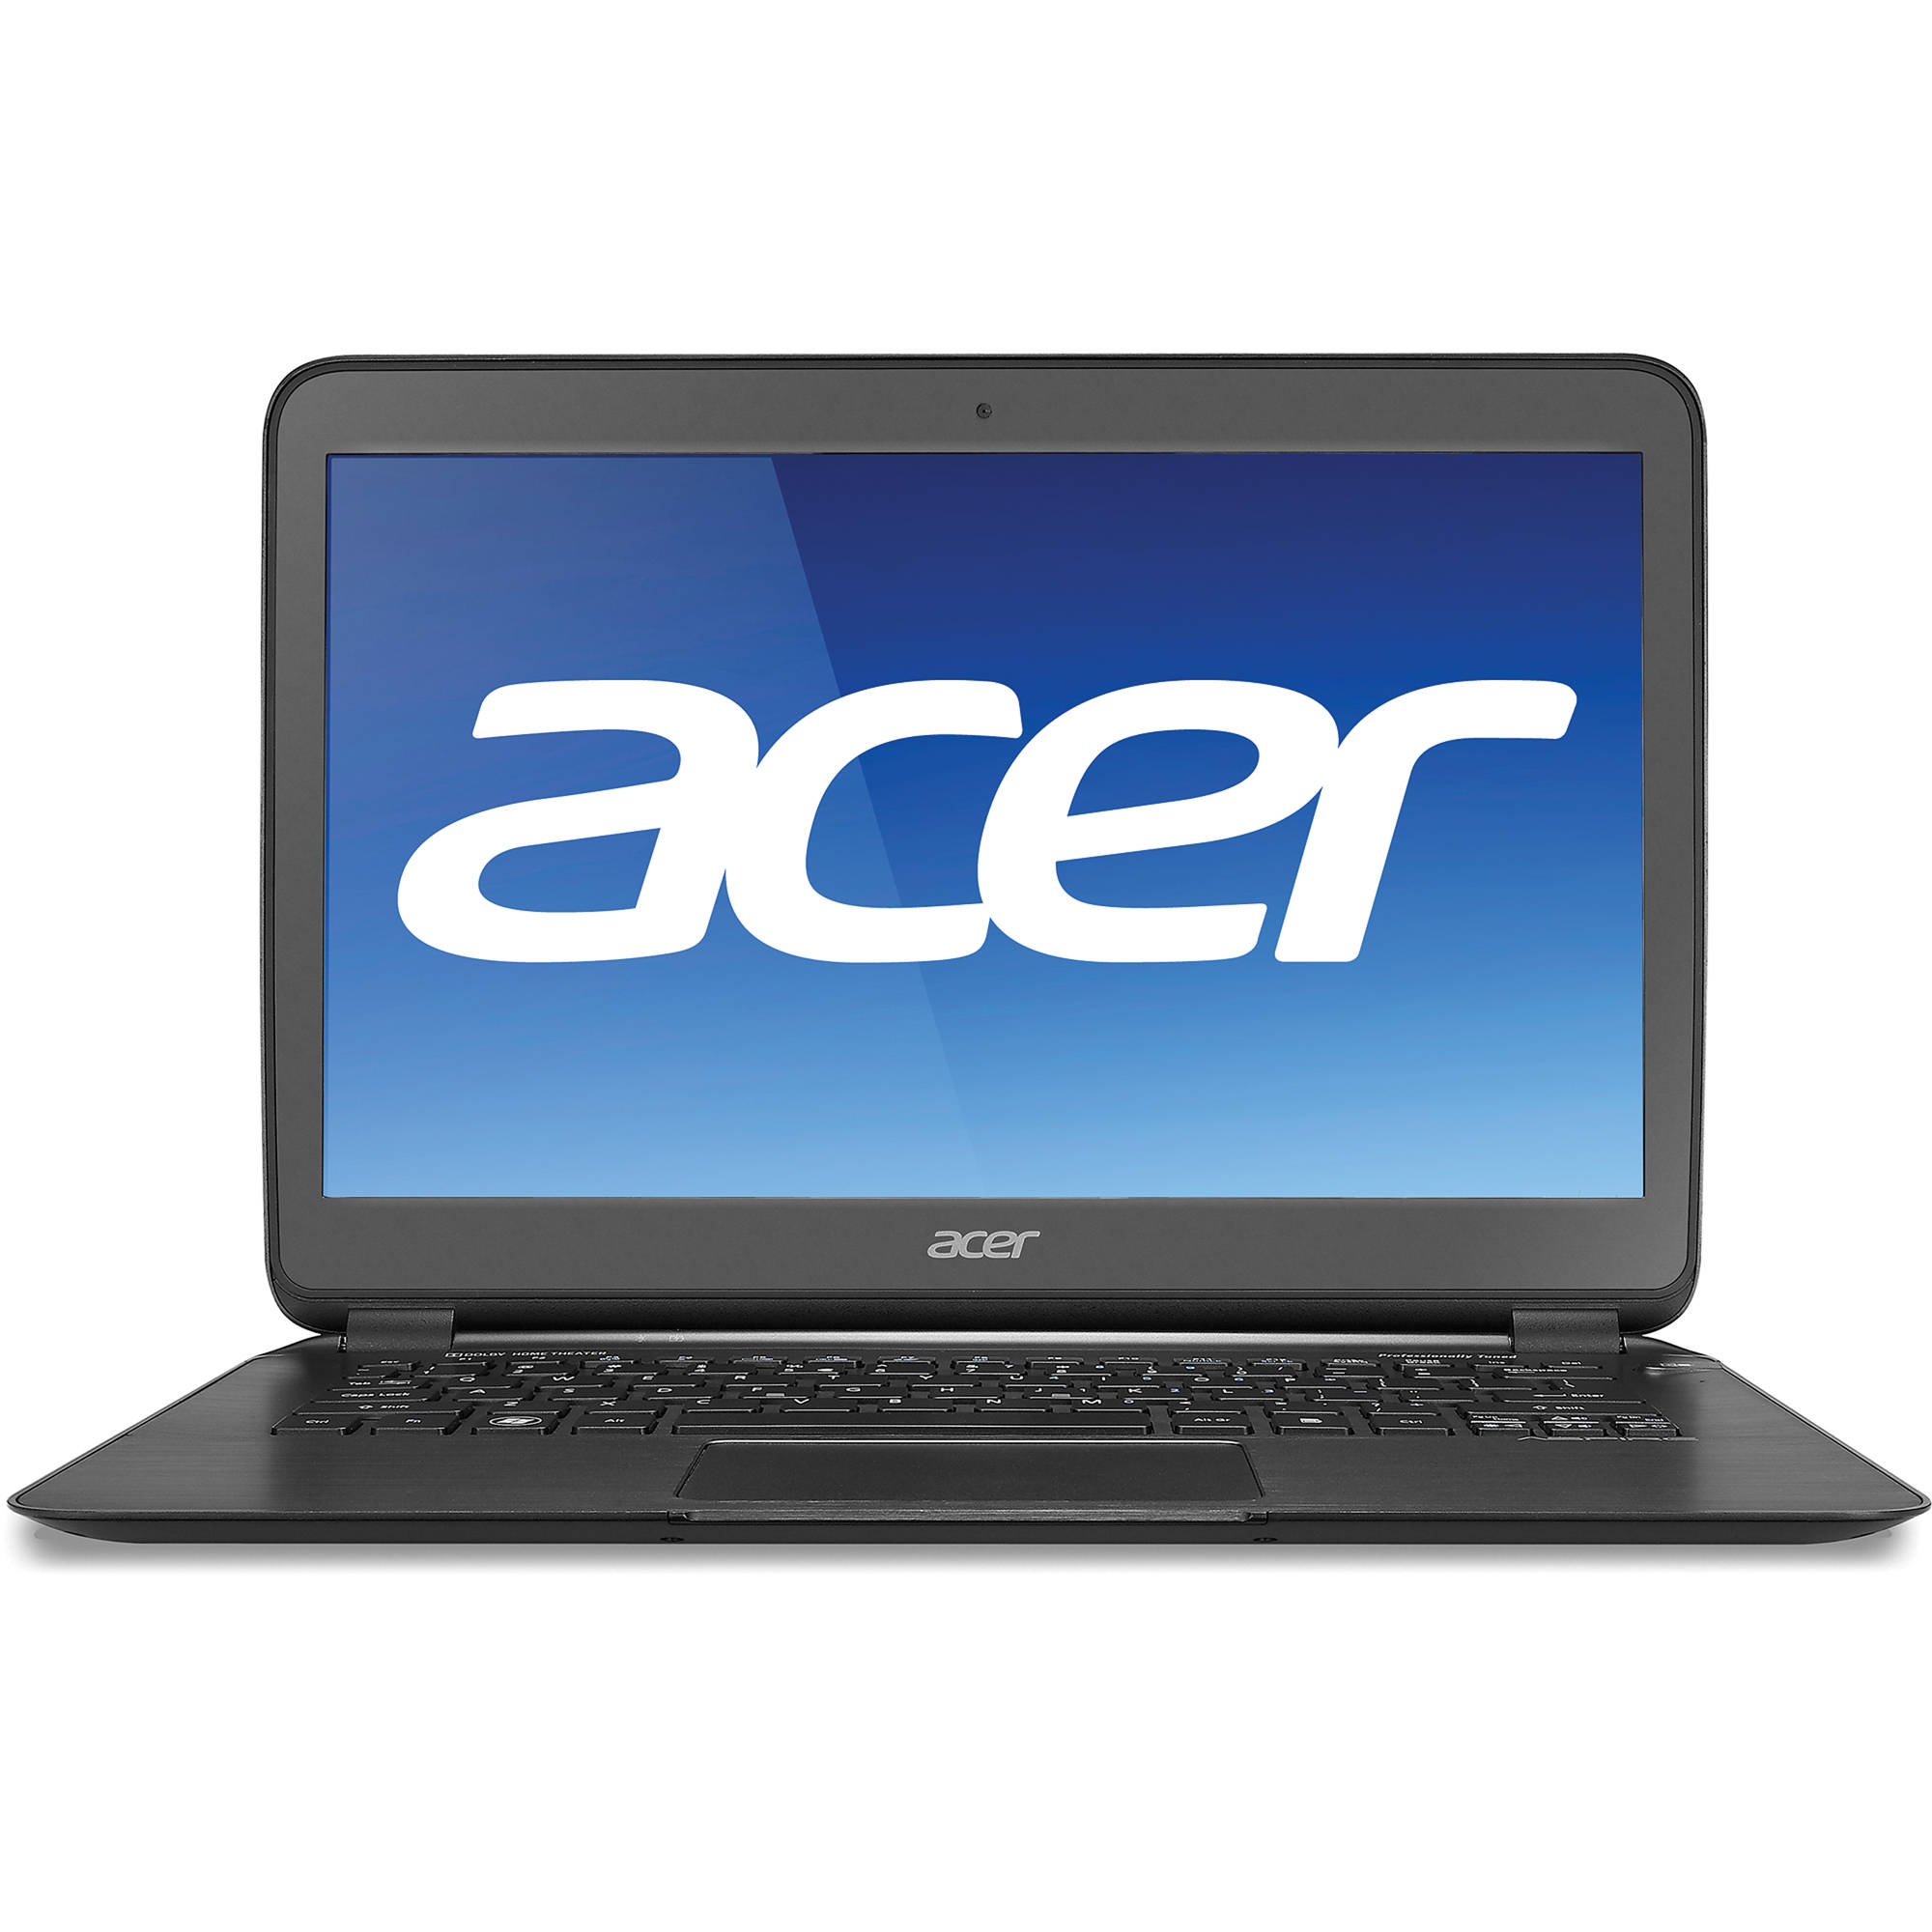 DRIVER FOR ACER ASPIRE S5-391 INTEL USB 3.0